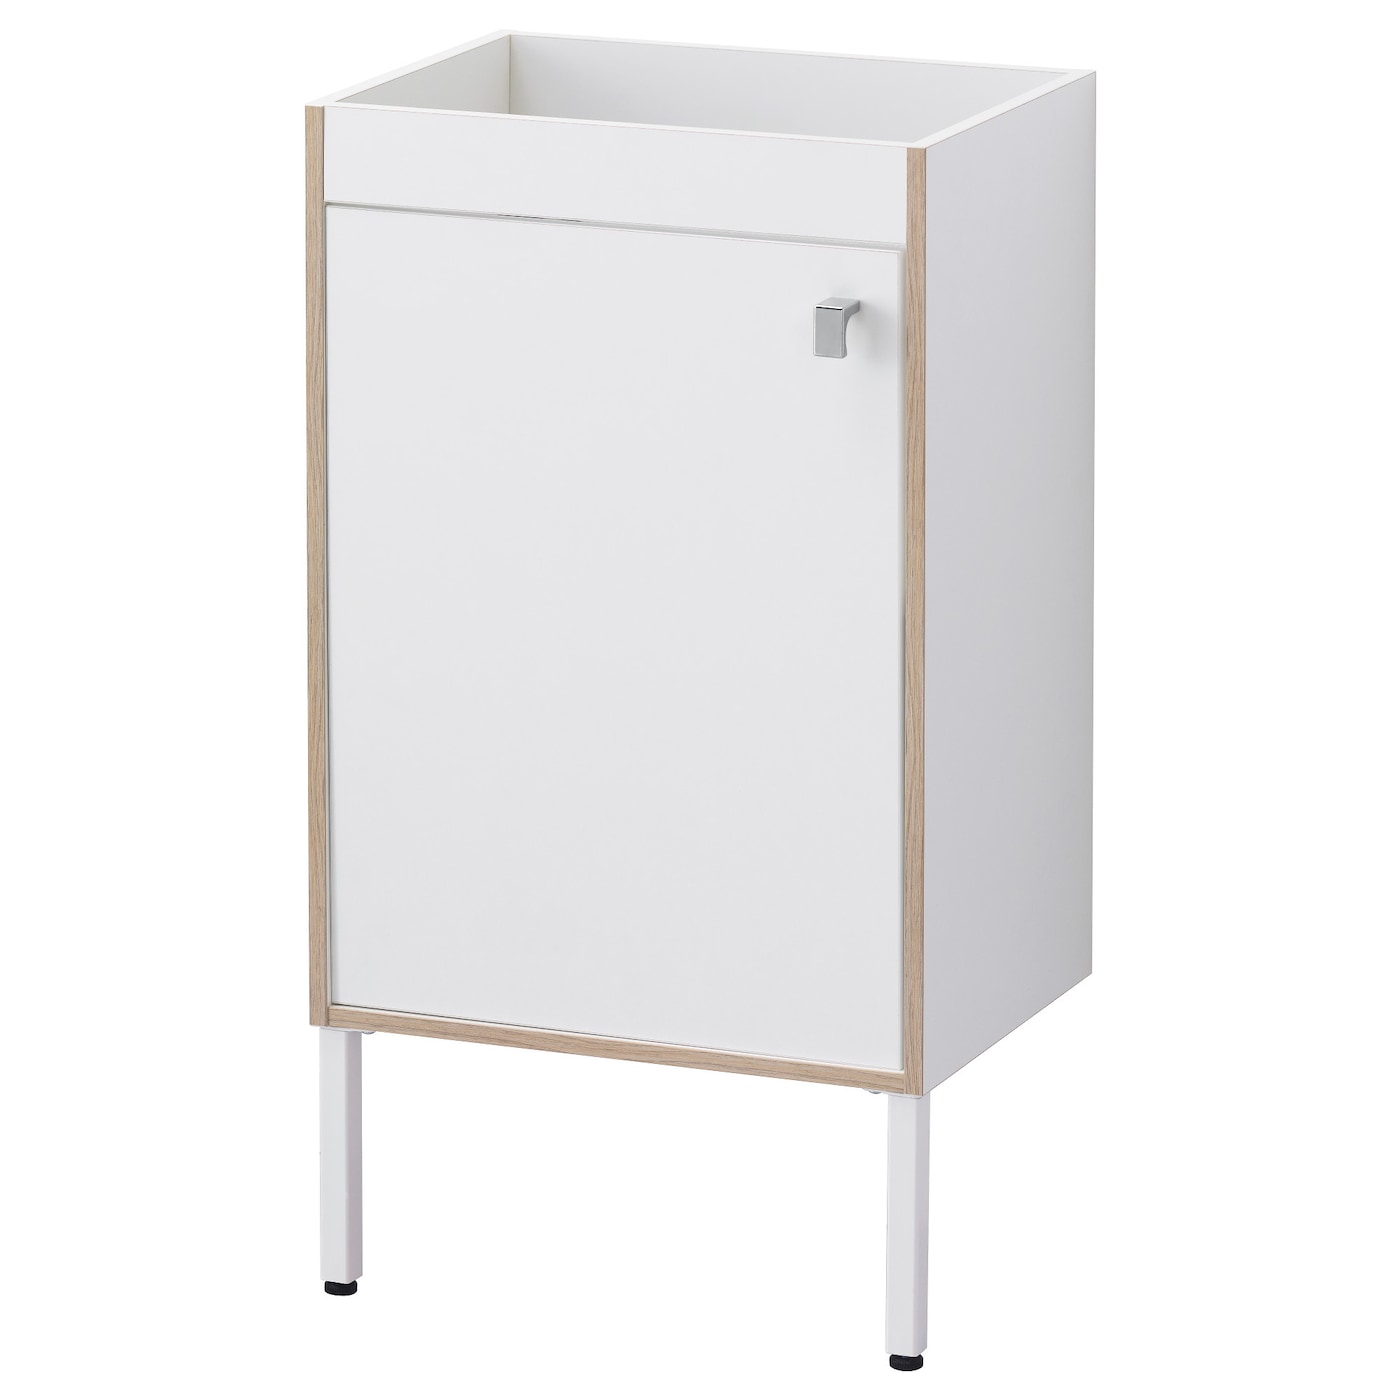 Vanity Units  Sink Cabinets & Wash Stands  IKEA